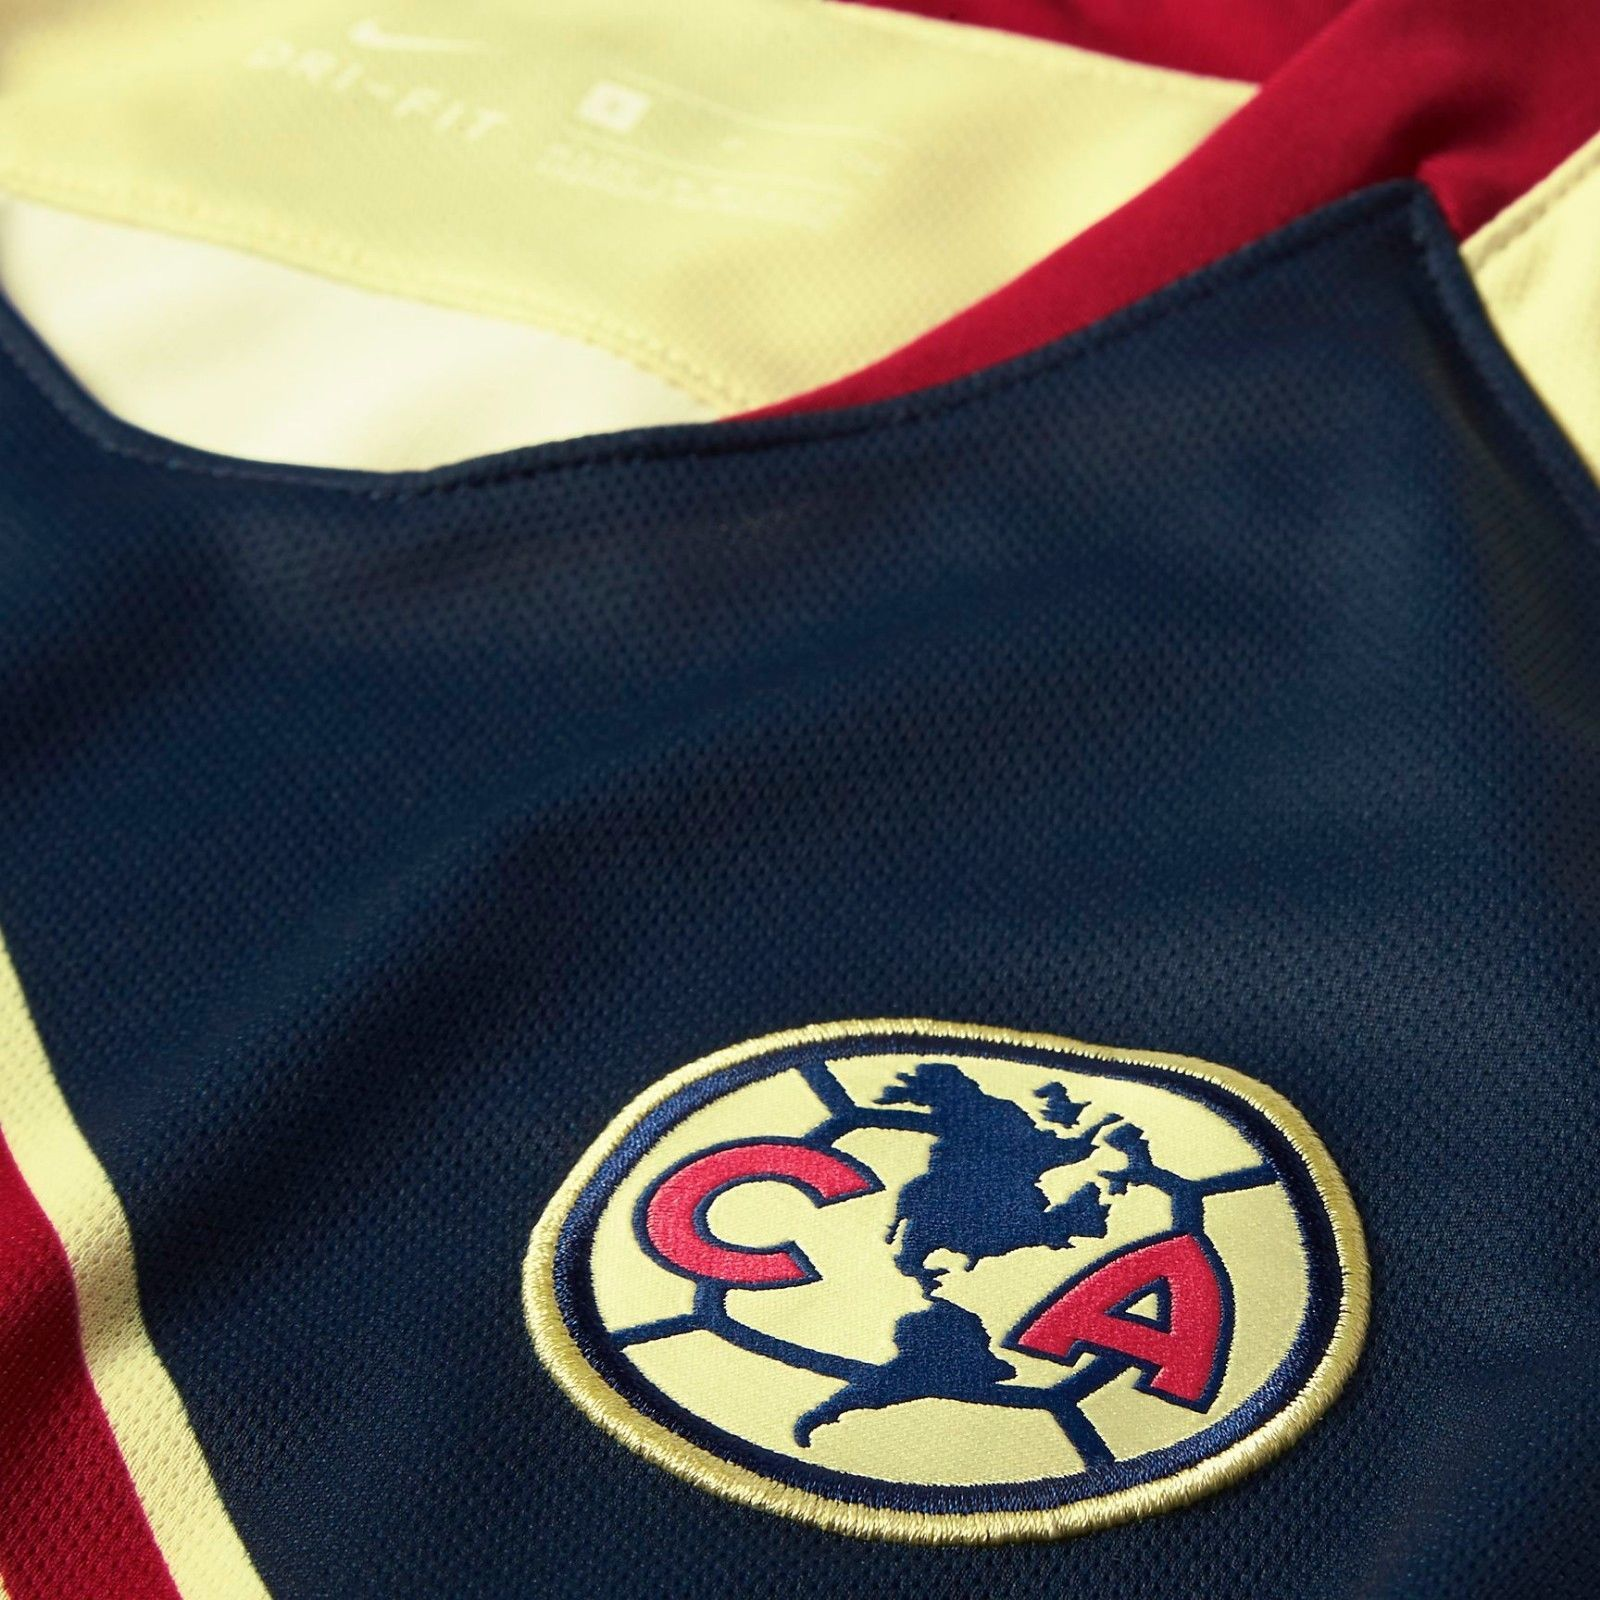 detailed look 6a69d d5fbd Nike Club America Women's Home Jersey and 50 similar items